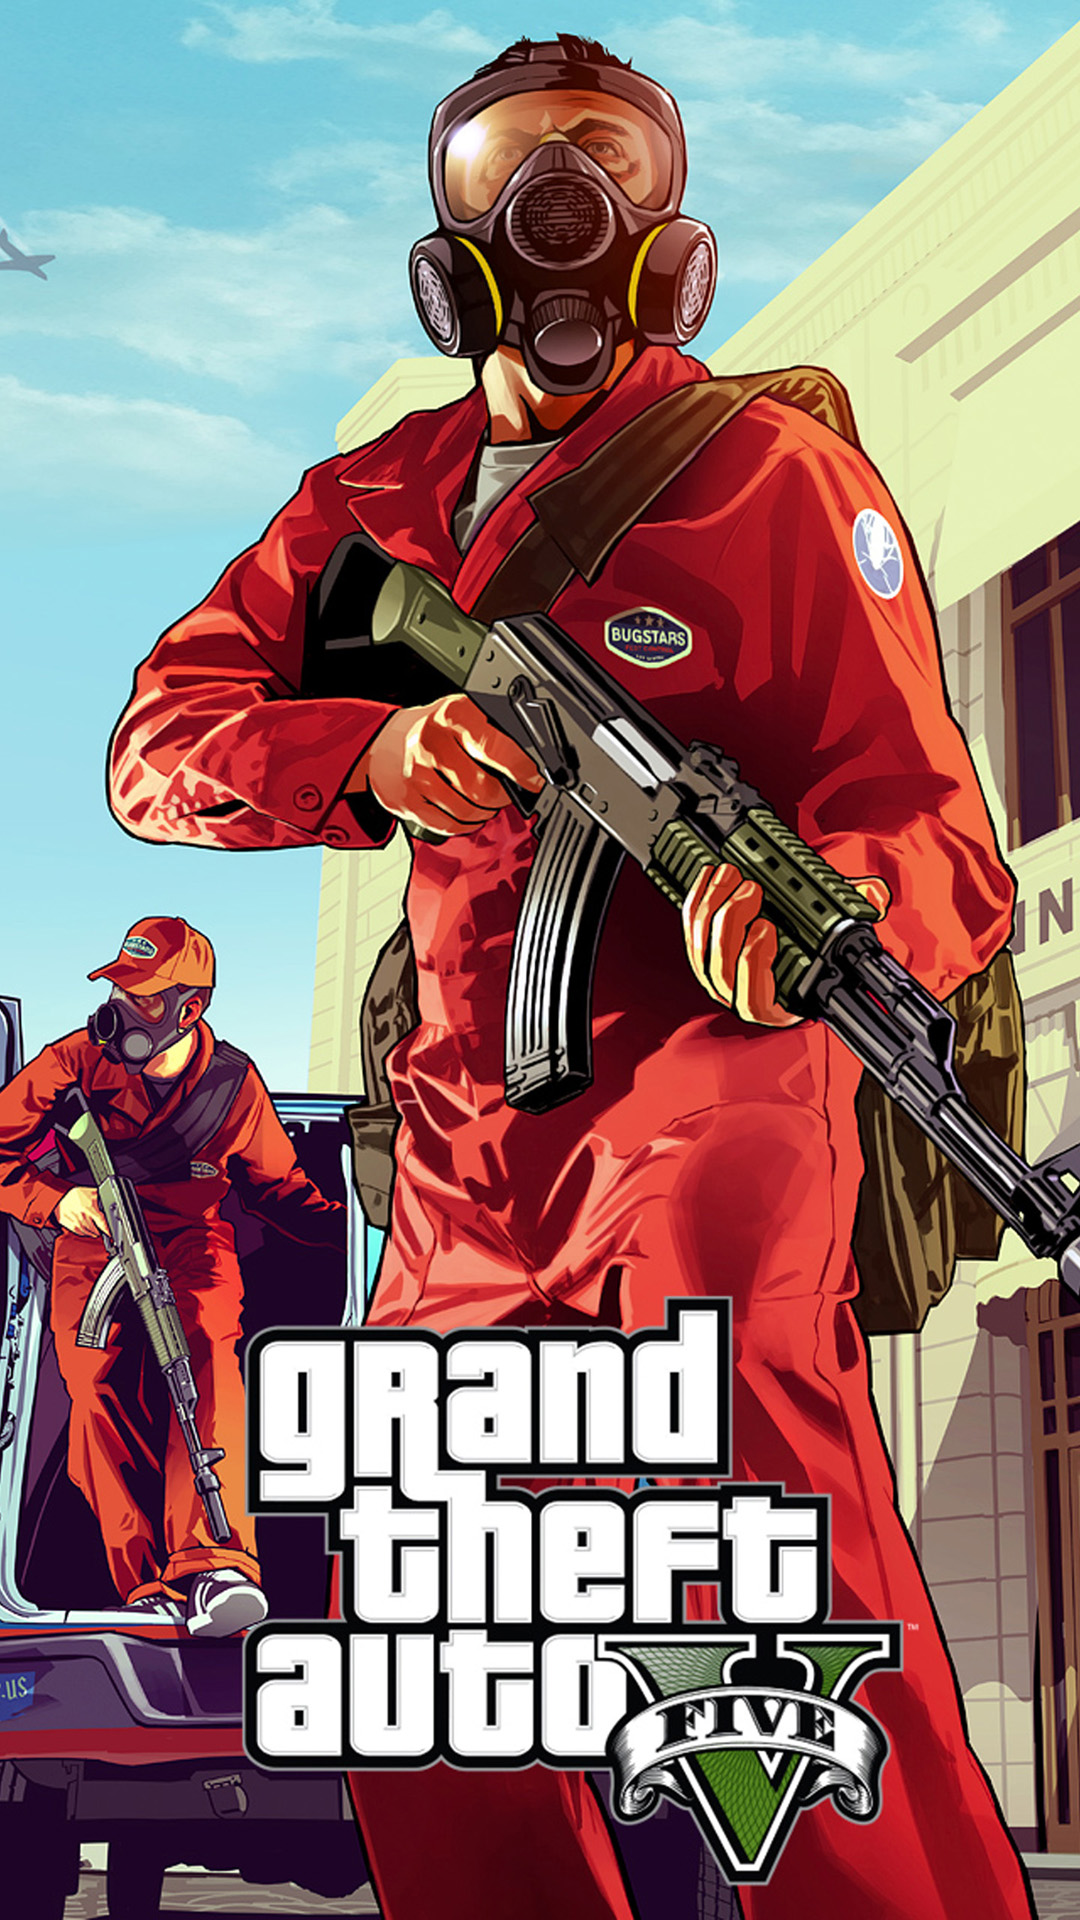 Gta v wallpapers hd fondos de pantalla for Wallpapers para android